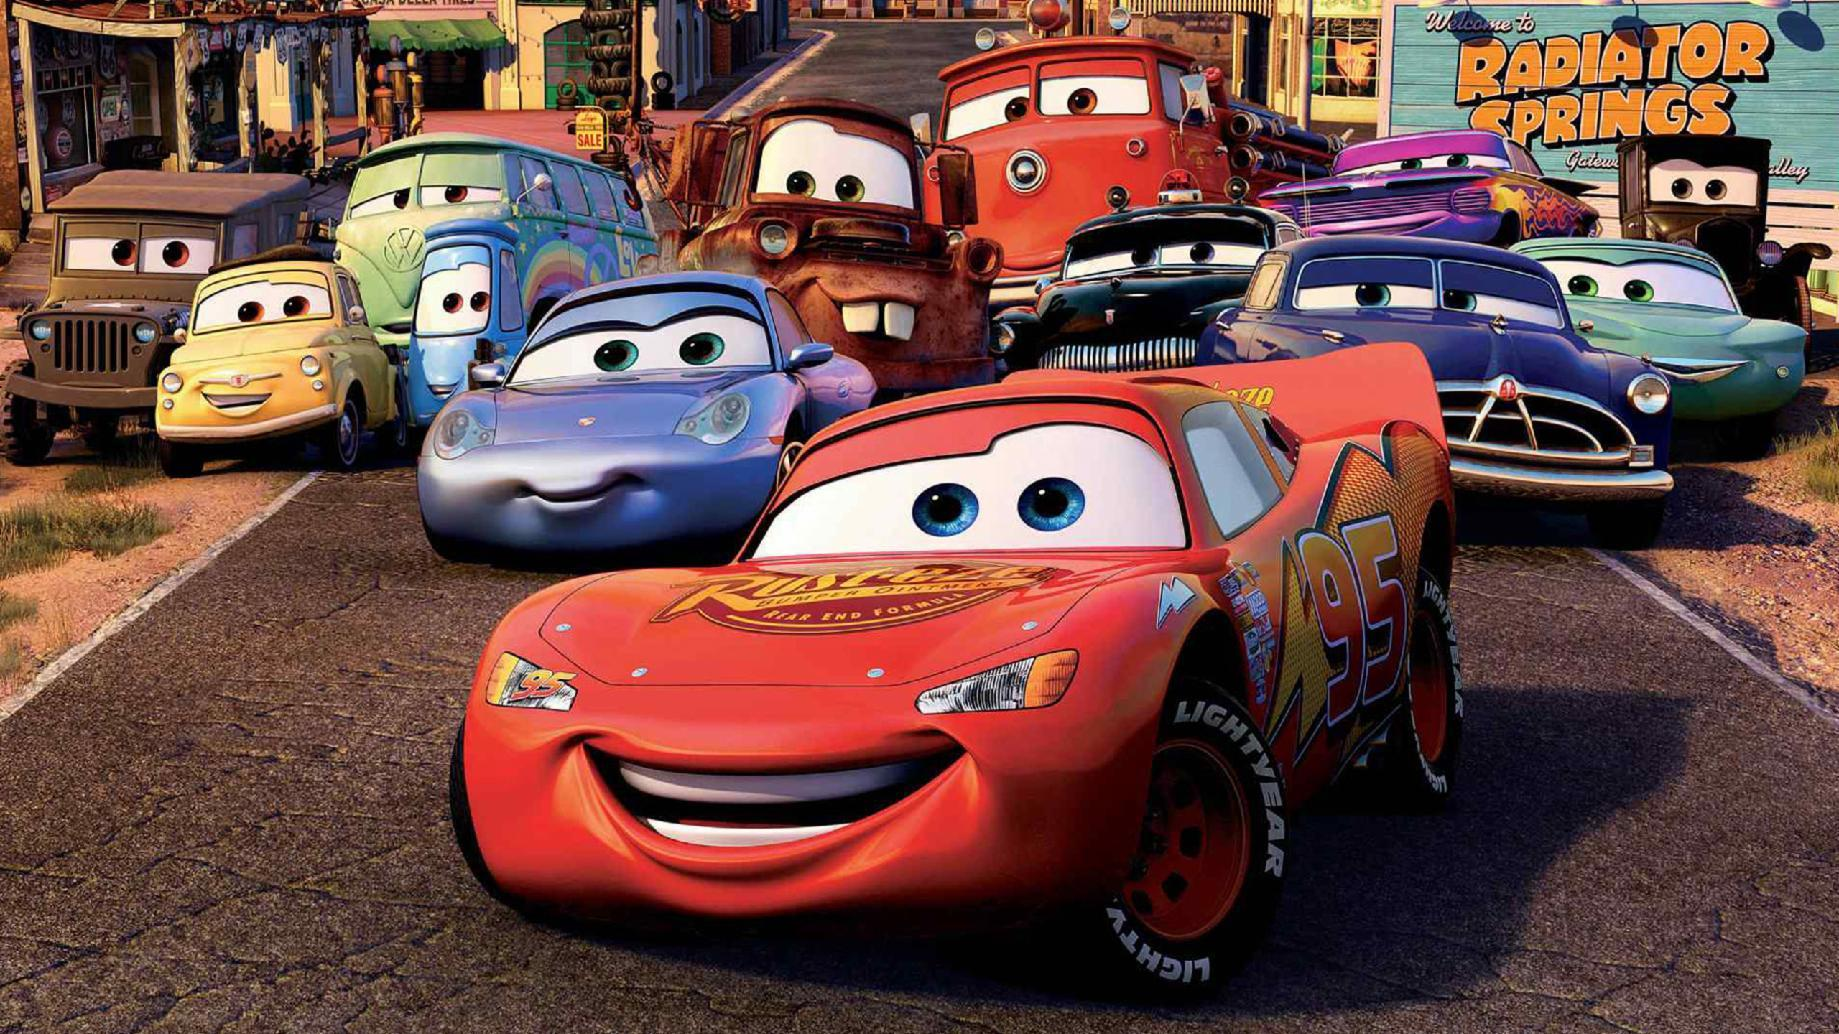 Did you enjoy the movie Cars?